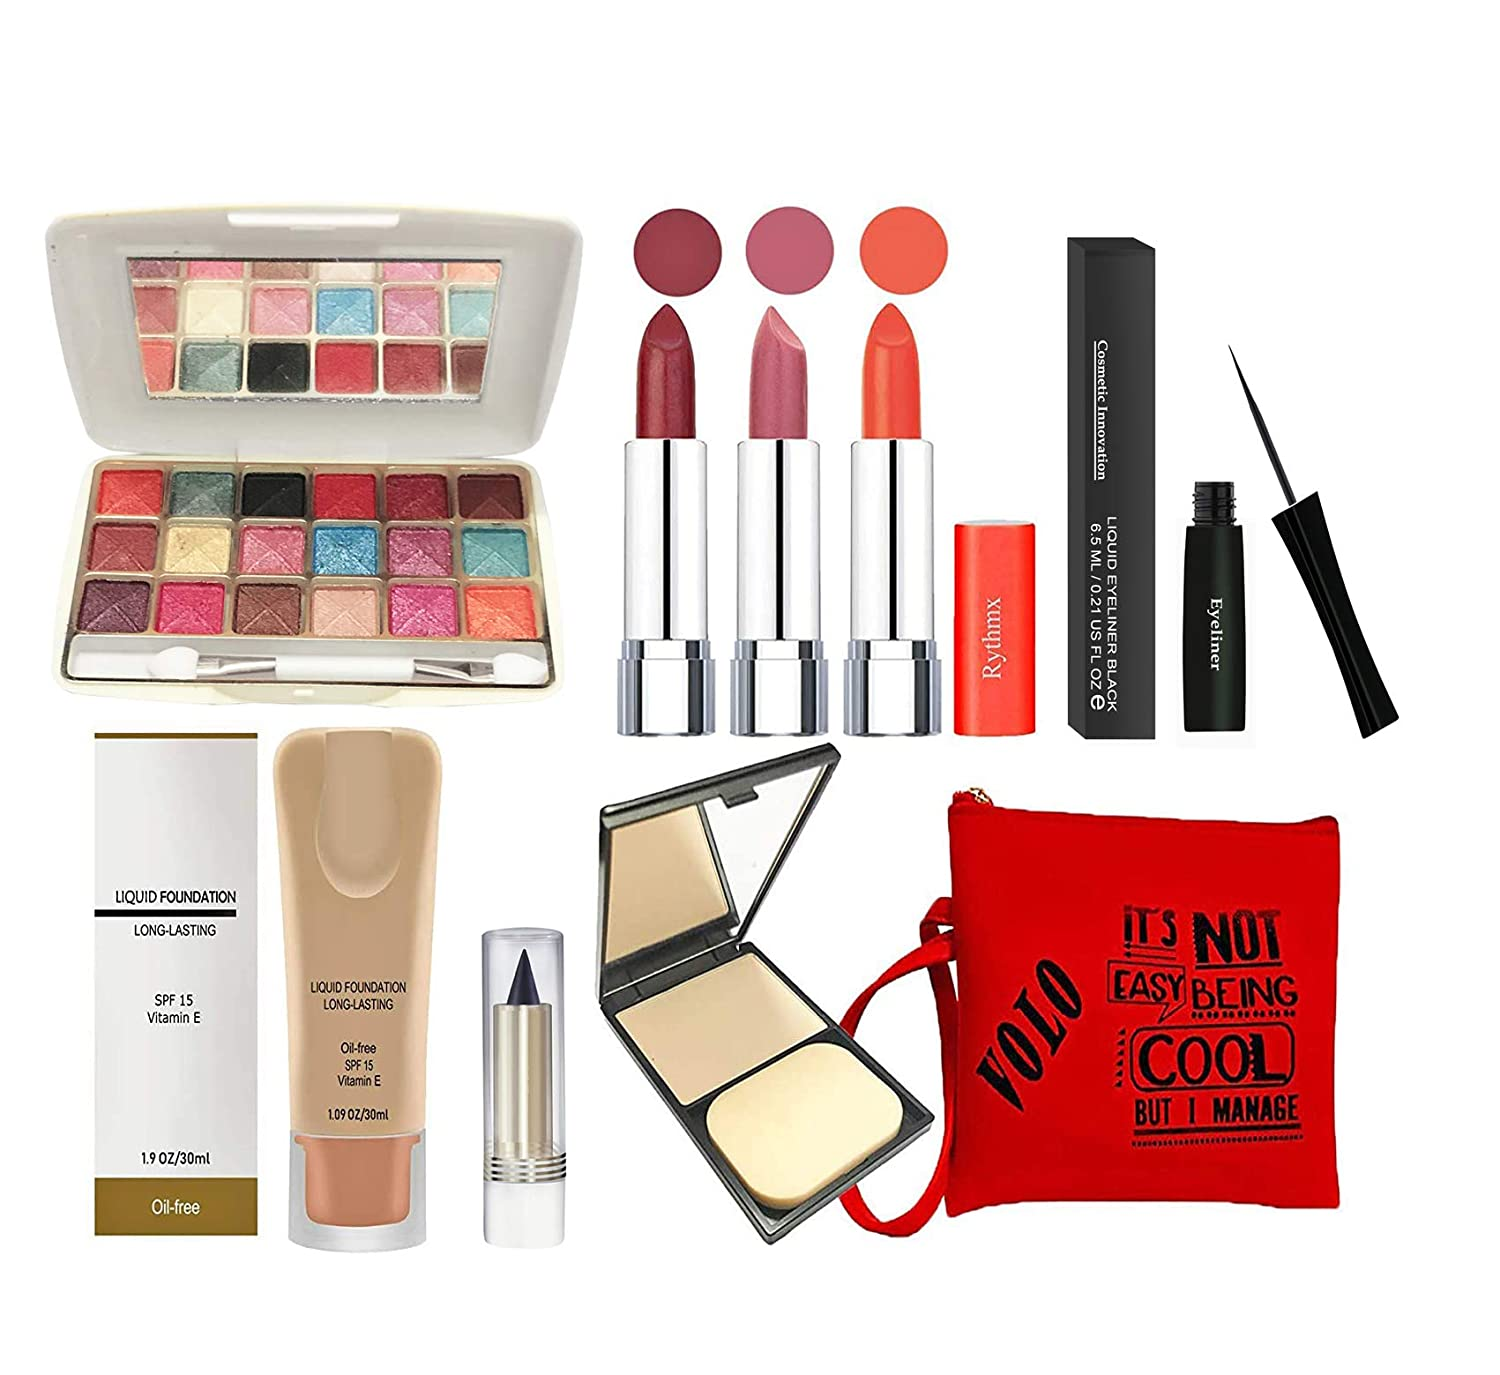 volo All In One Professional Women's Makeup Kit (3 Pcs Lipsticks,1 Eye Shadow, 1 Foundation,1 Eyeliner, 1 Compact, 1 Kajal, 1 Pouch)